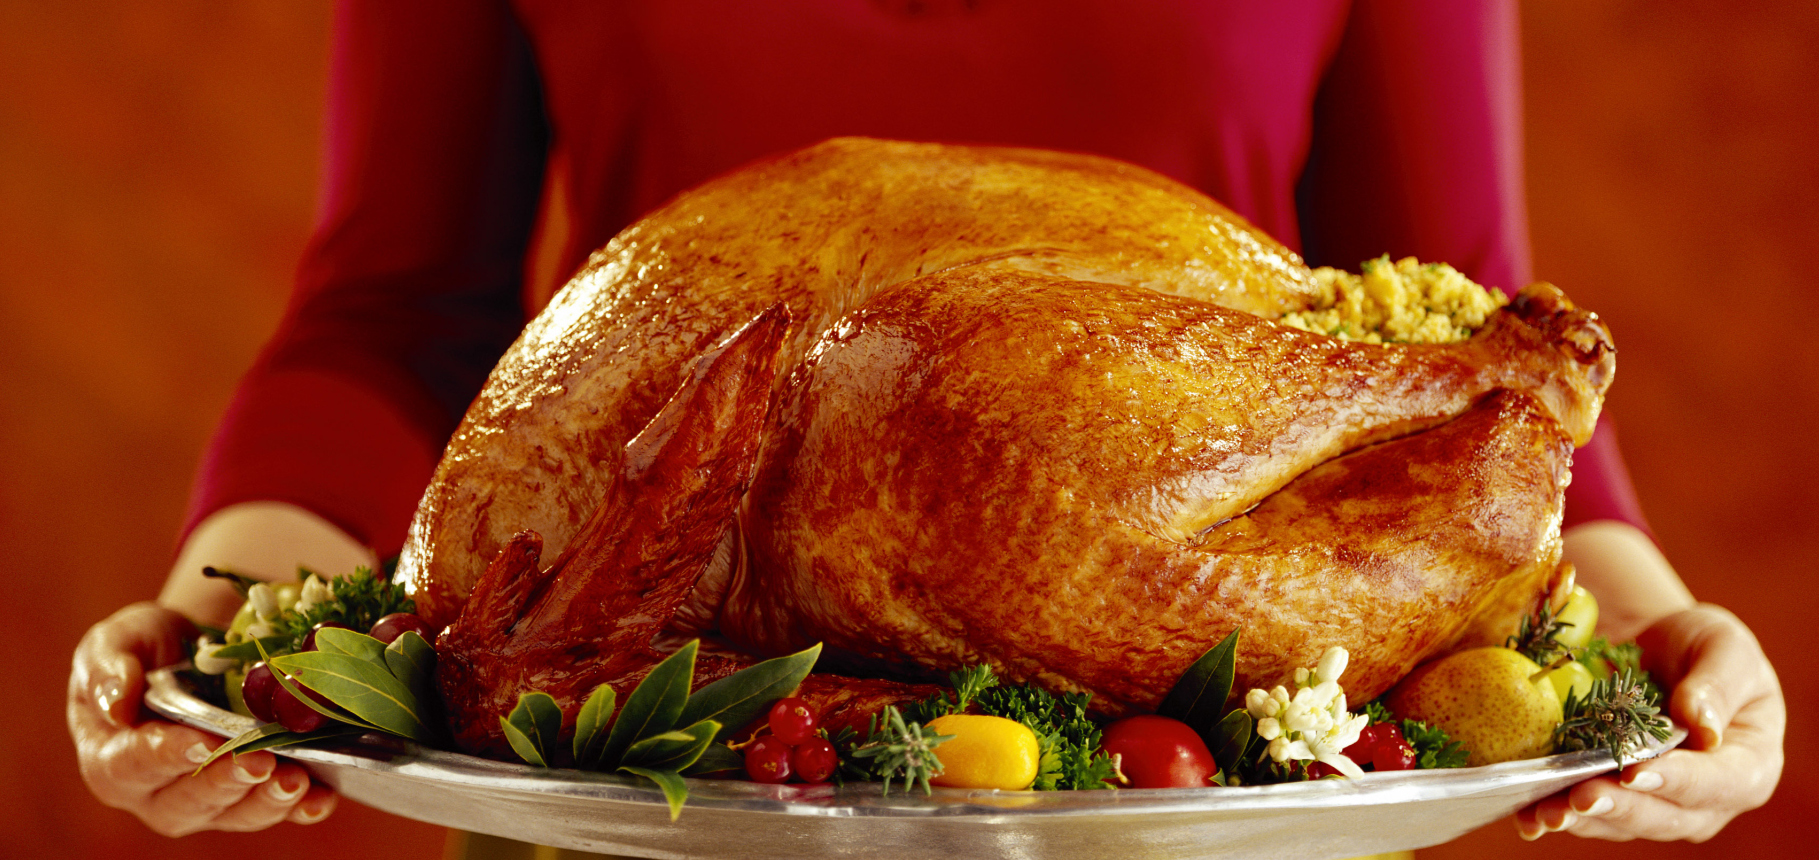 Buttermilk Herb Brined Turkey